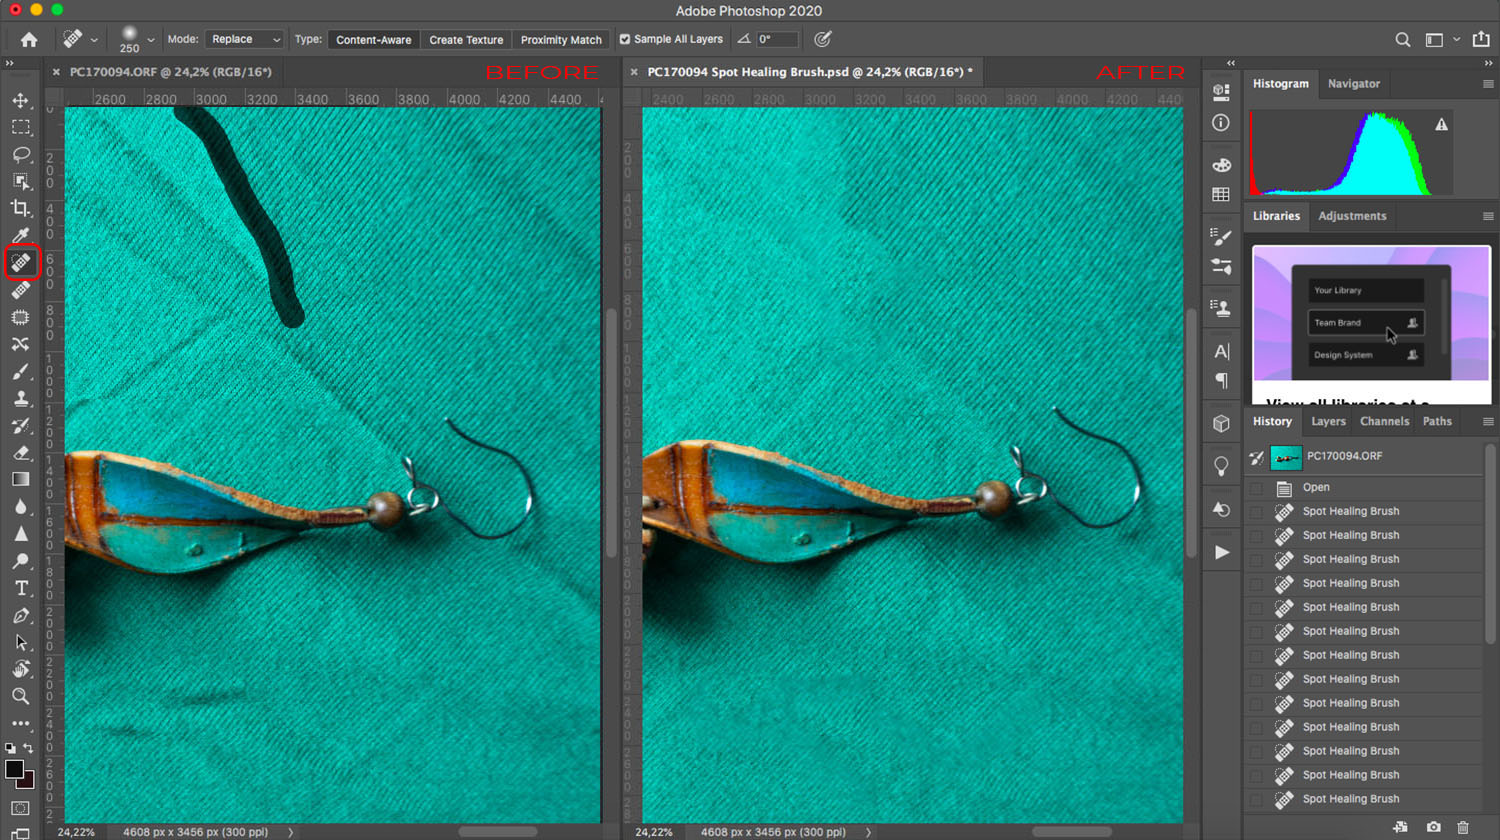 Using the spot healing brush to remove wrinkles from clothes in Photoshop